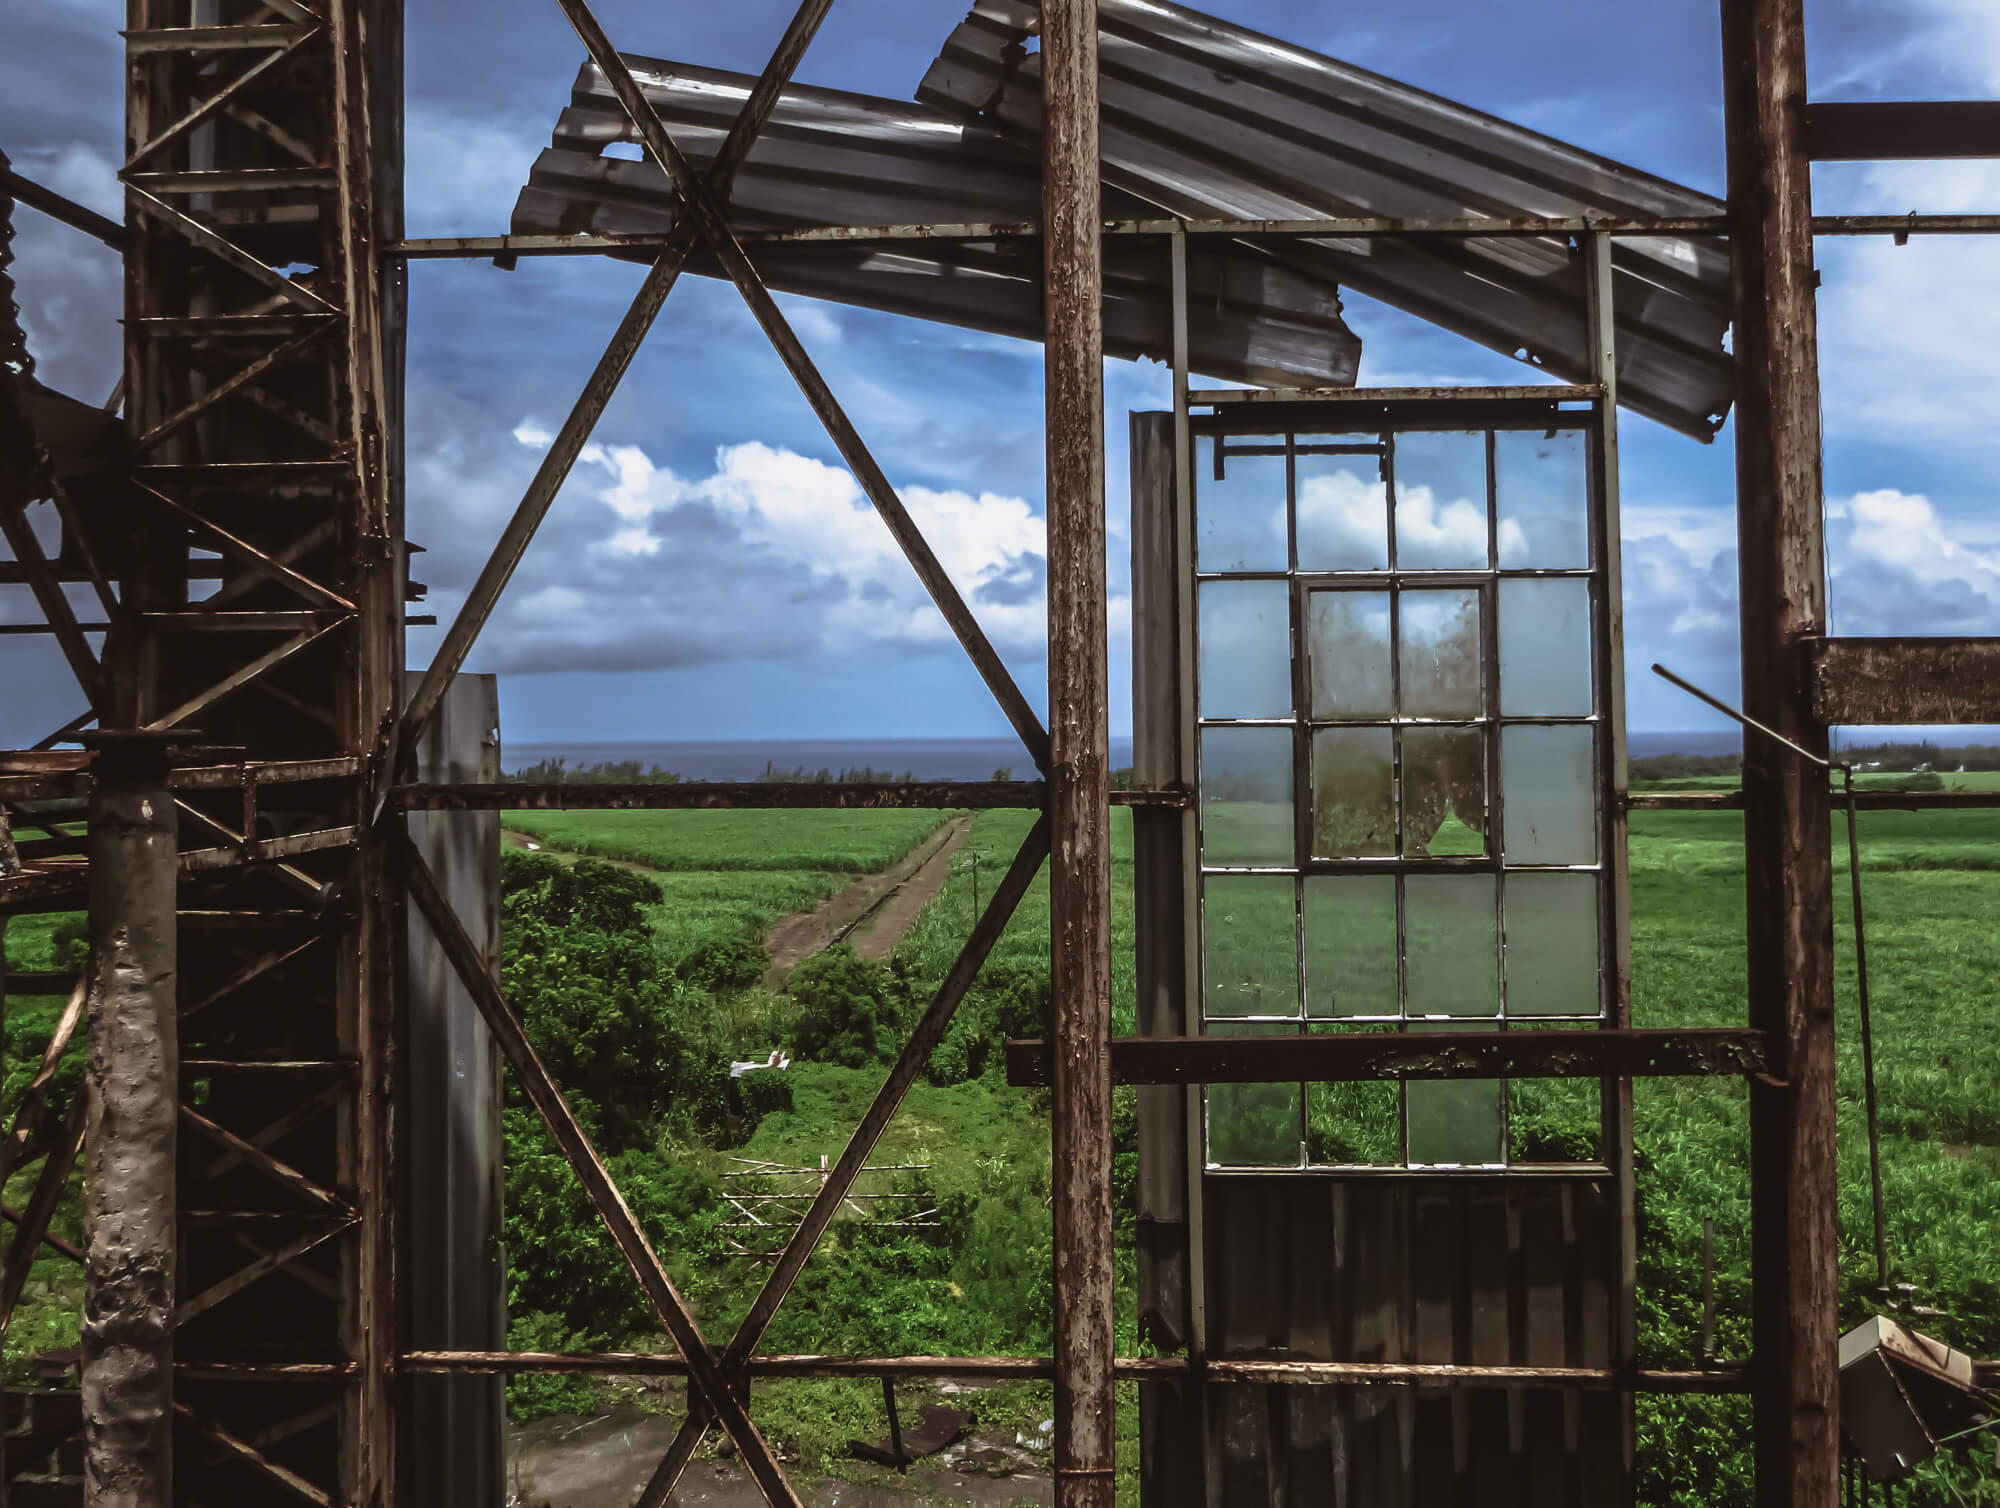 Climbing a rusty factory of questionable safety in Mauritius